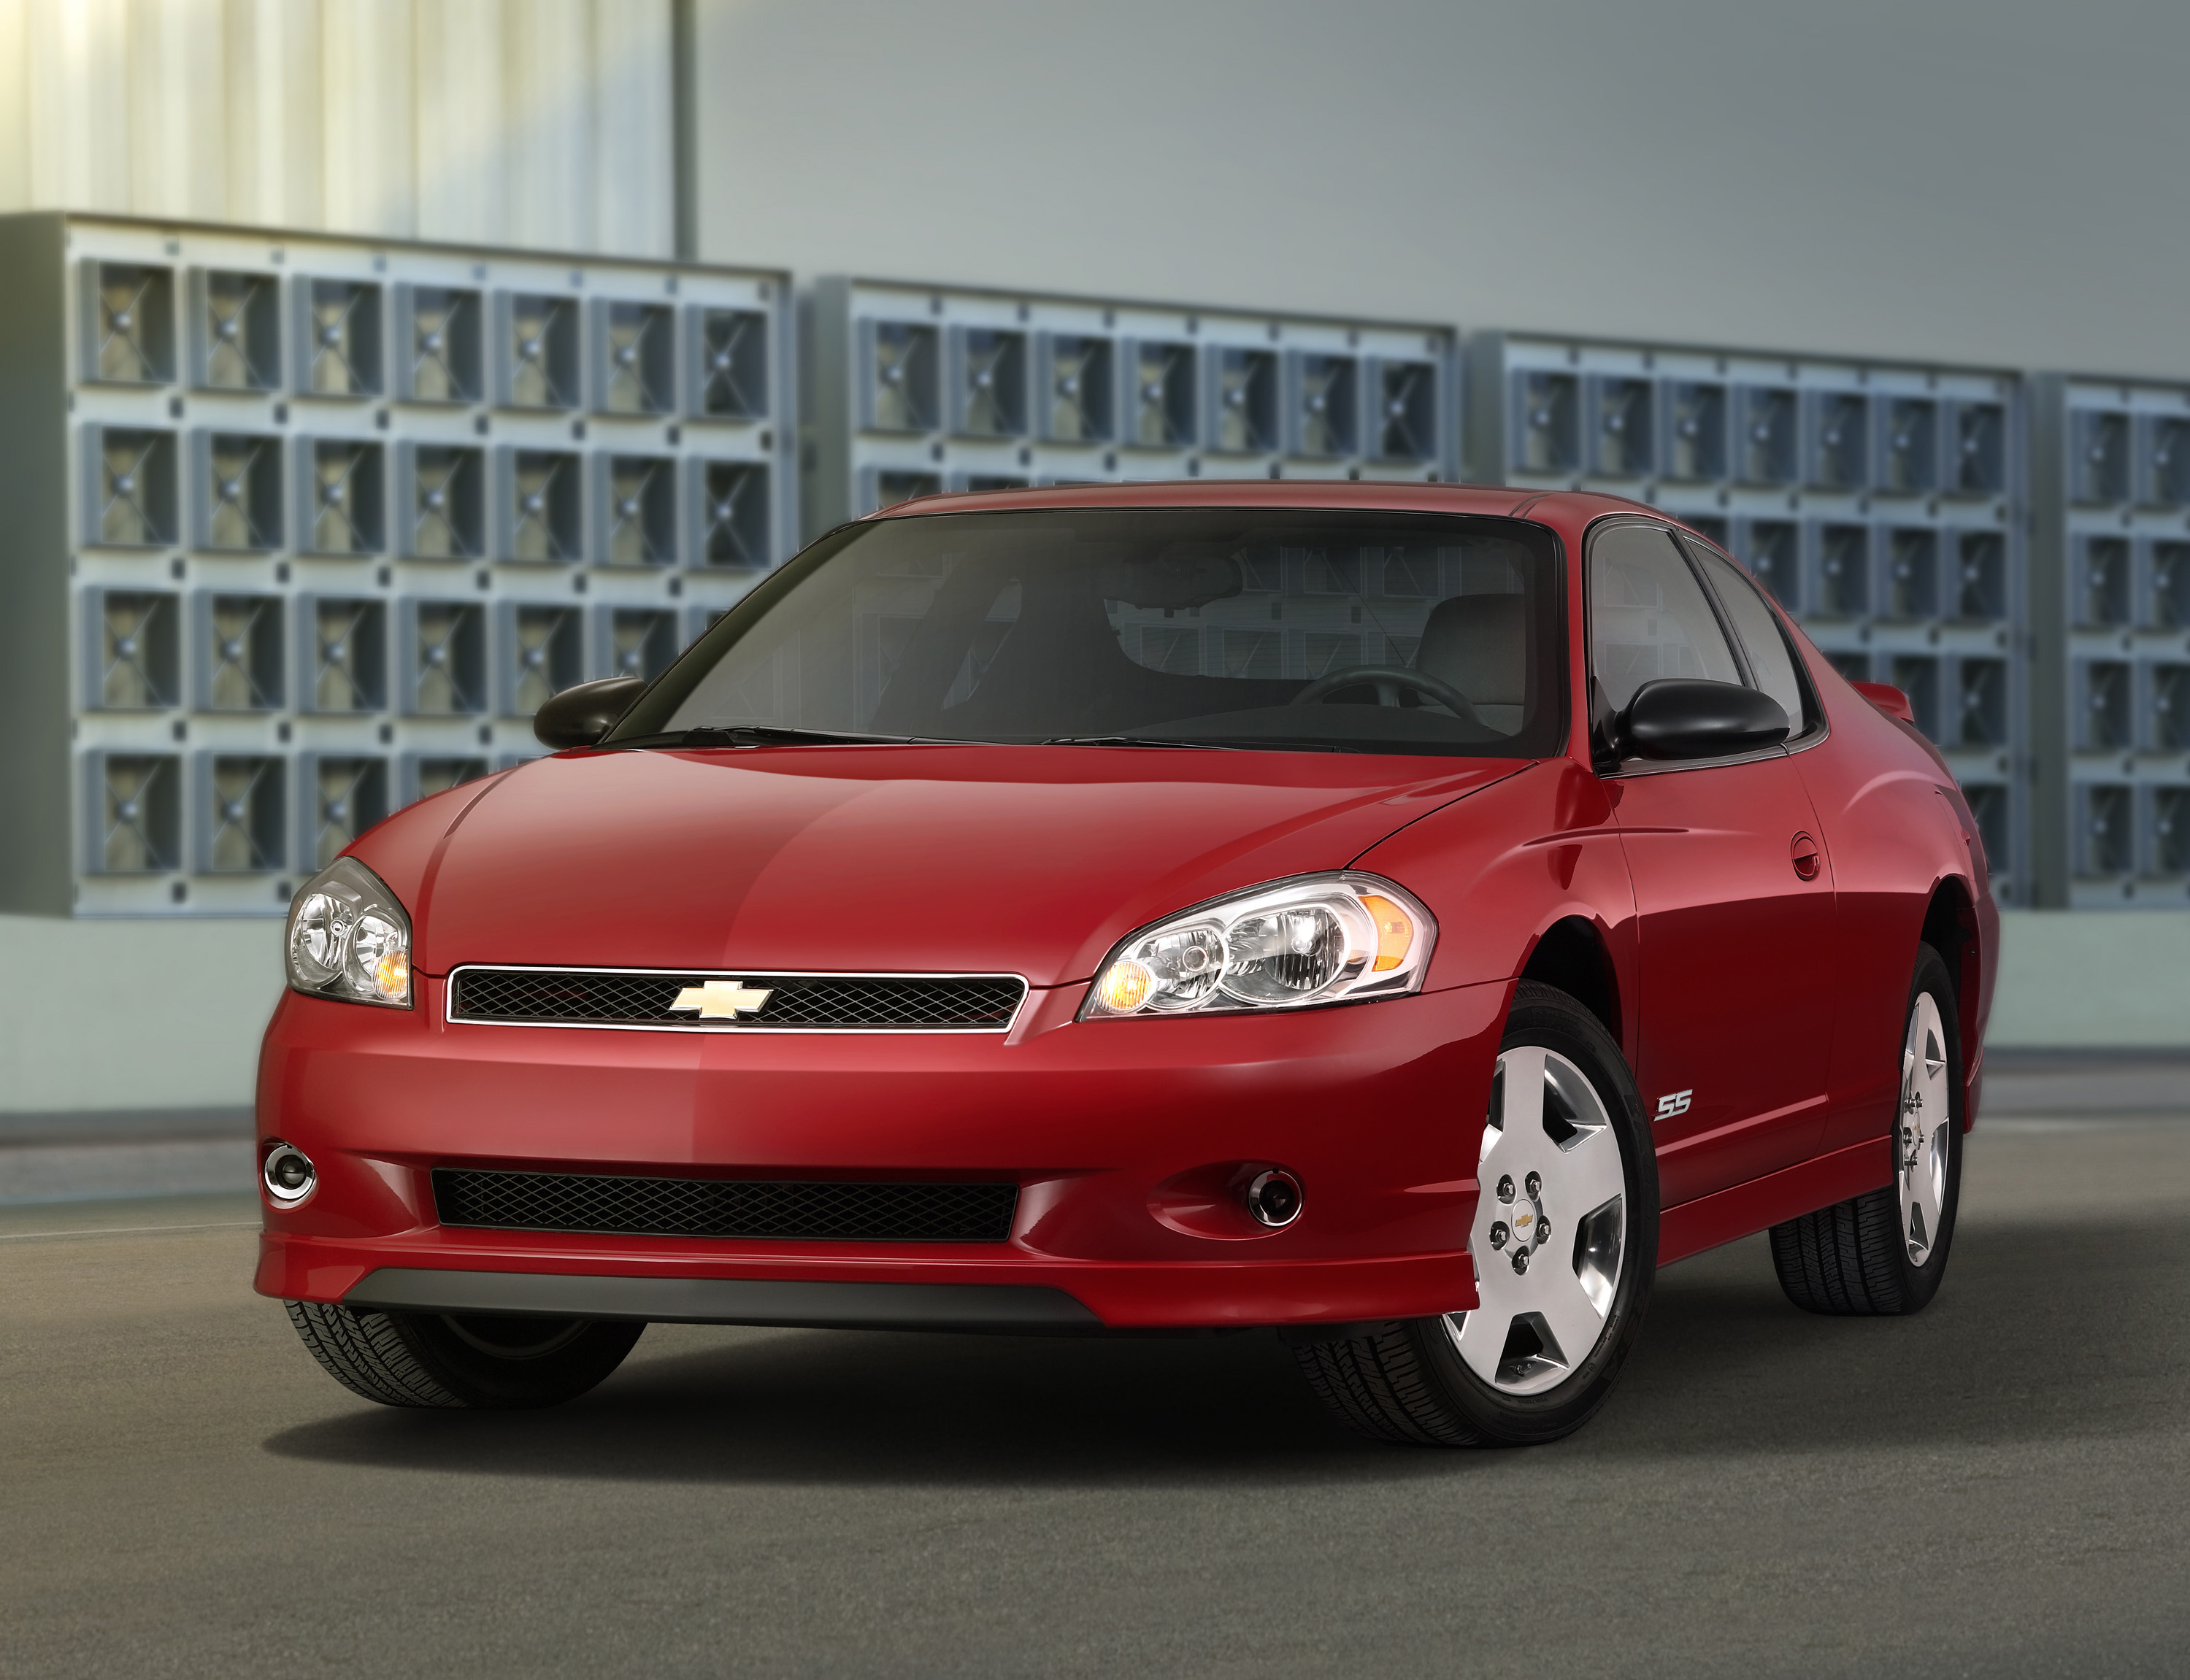 2006 Chevrolet Monte Carlo SS   Top Speed. »